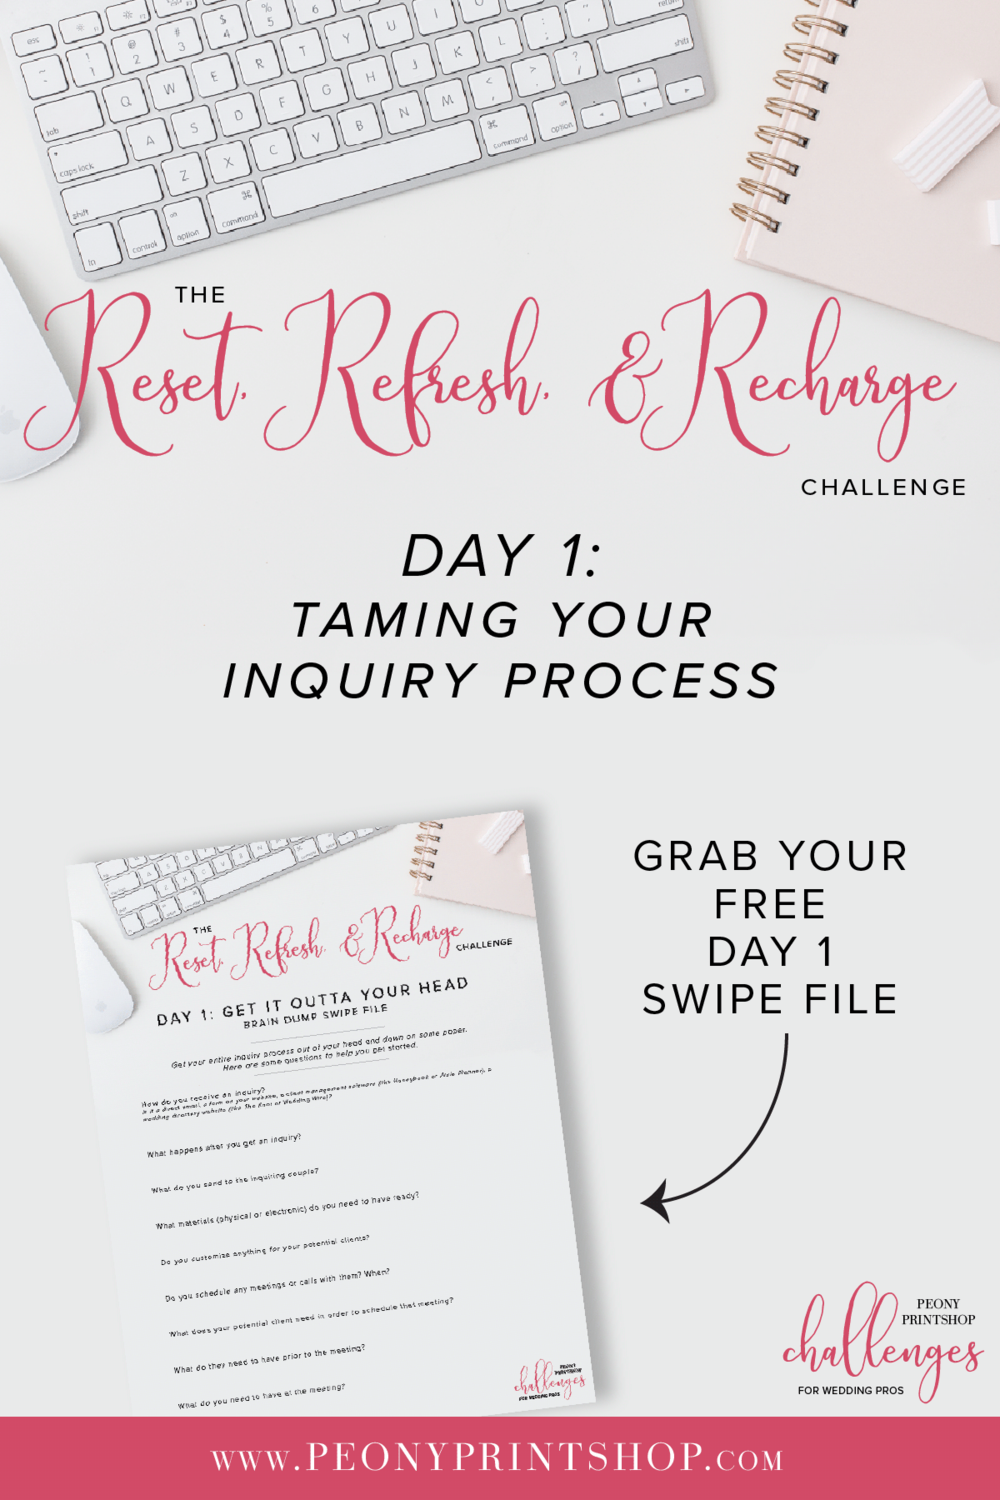 Reset, Refresh, and Recharge 5-Day Challenge on PeonyPrintshop.com | Edition 1 - Taming Your Inquiry Process | Grab your FREE Swipe File for Day 1: Get It All Outta Your Head on the blog.